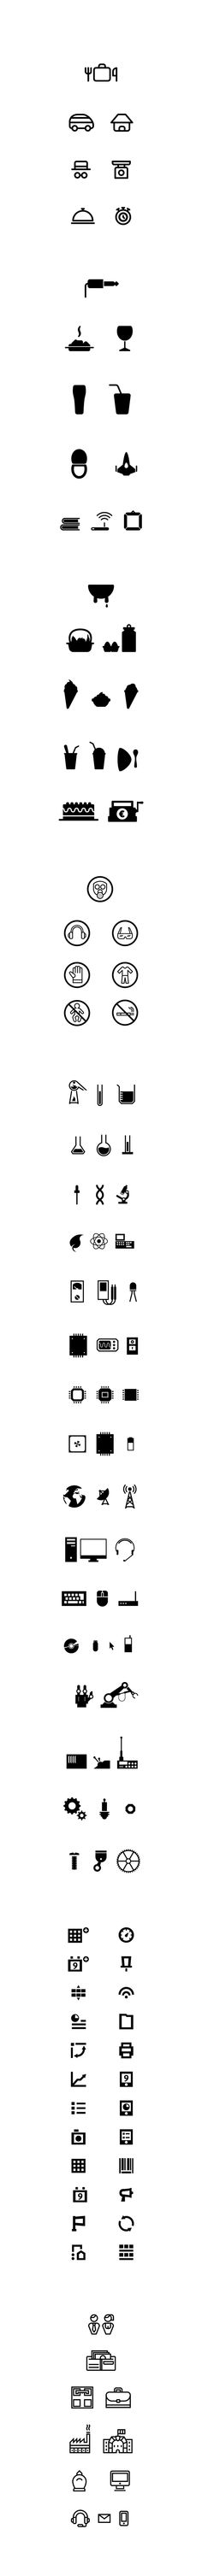 ICONS by boumaka , via Behance